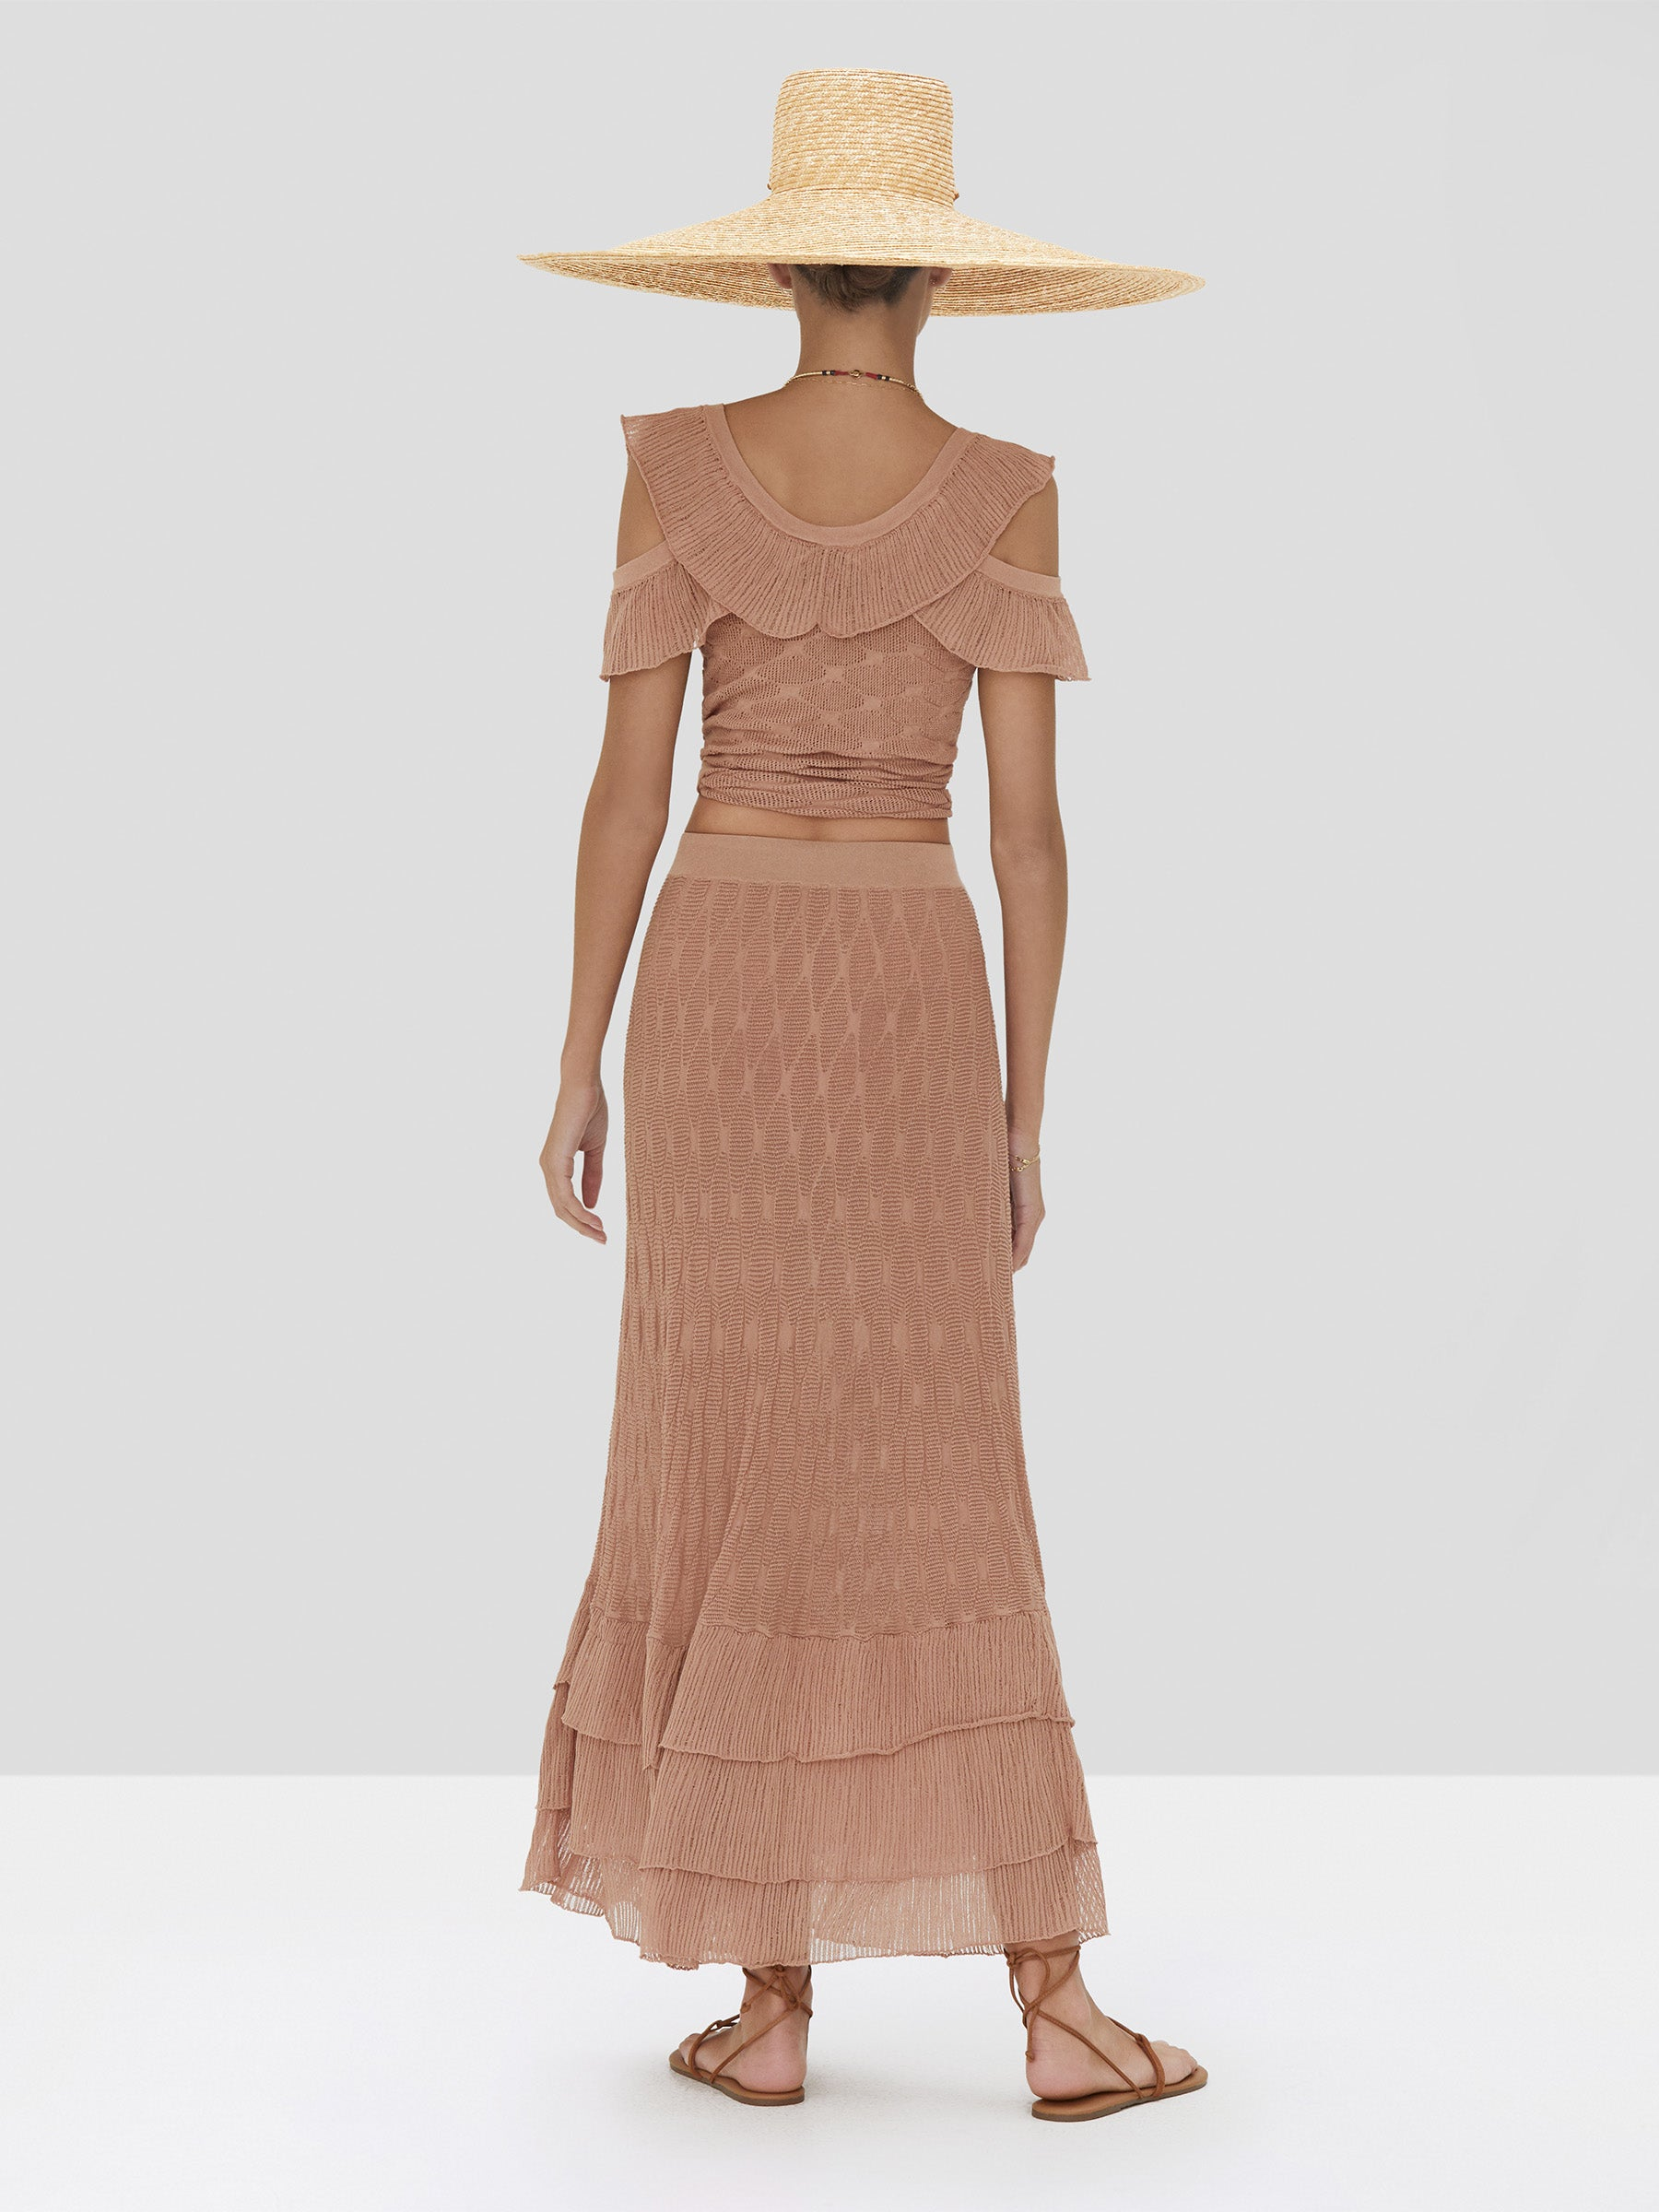 Alexis Belva Top and Dimona Skirt in Sand Spring Summer 2020 Collection - Rear View